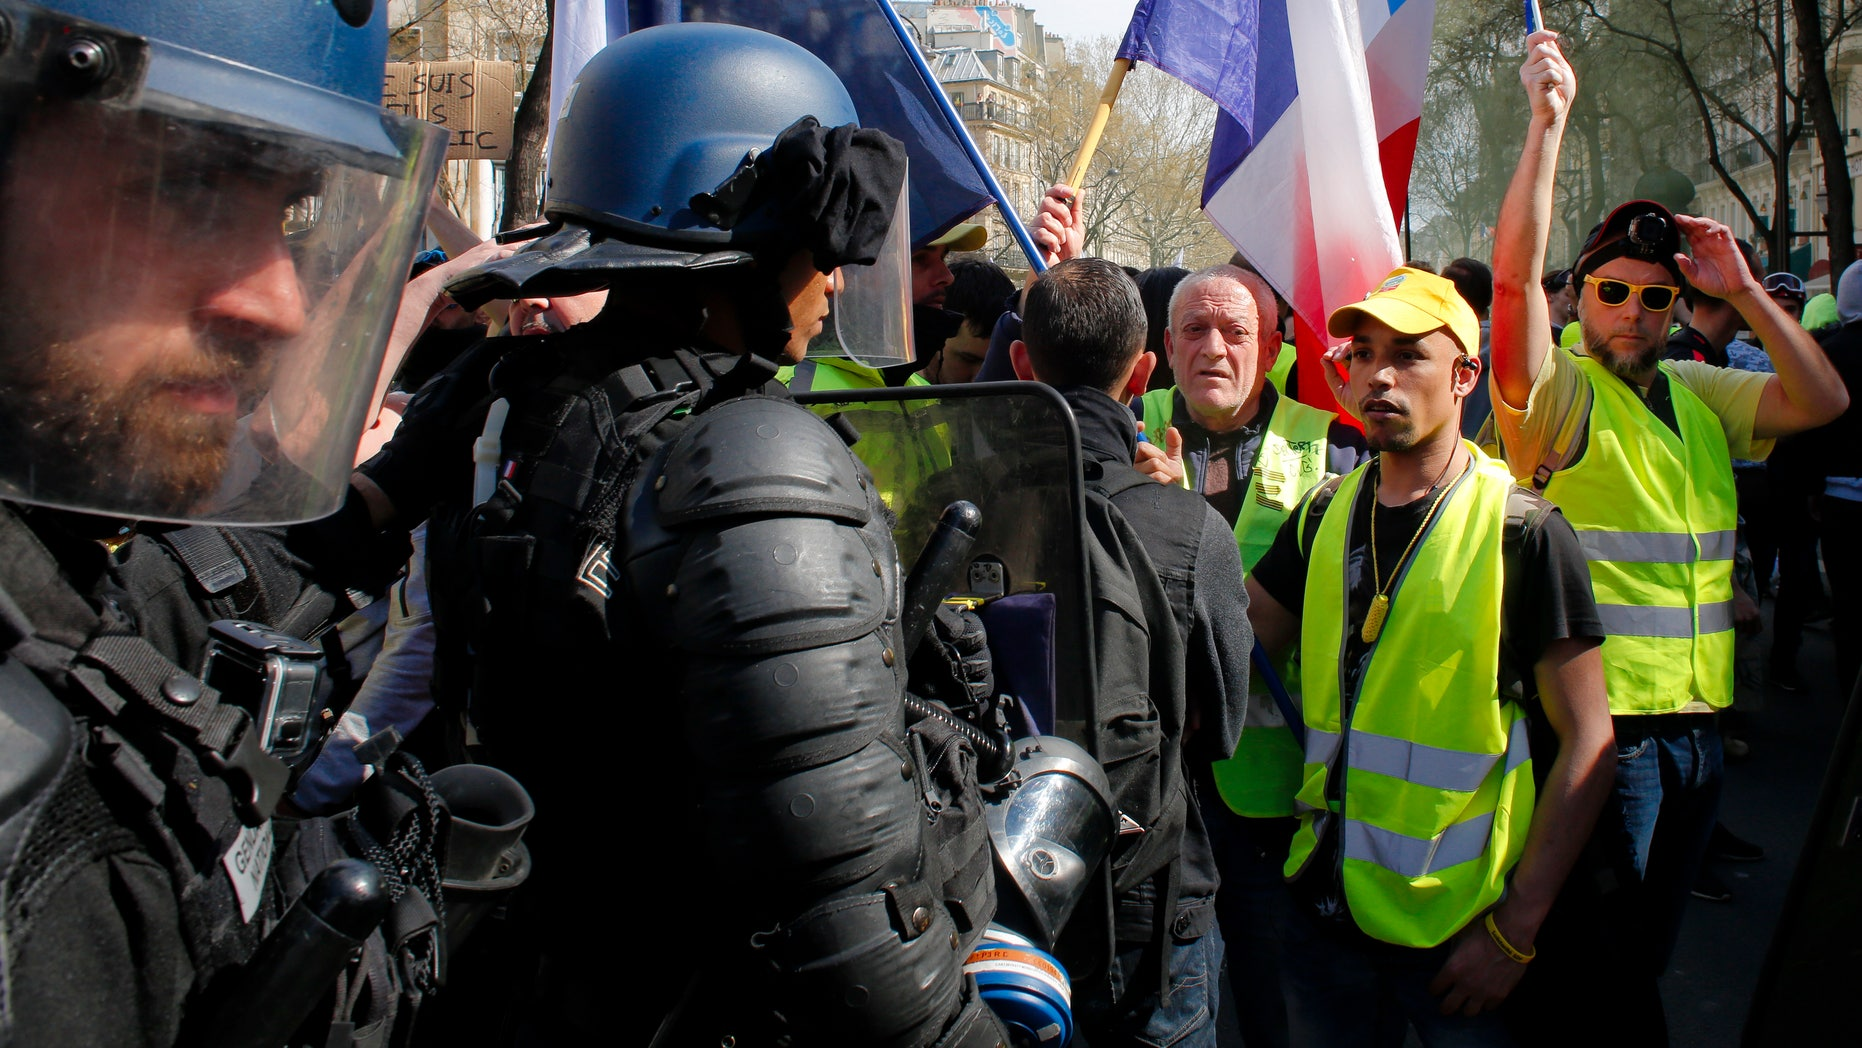 Riot policeman stand by as French yellow vest protesters are rallying to support an older woman activist injured in a confrontation with police, Saturday, March 30, 2019 in Paris. In 2019, 24 police officers in France have committed suicide, raising alarm over increased demand on the nation's police force.